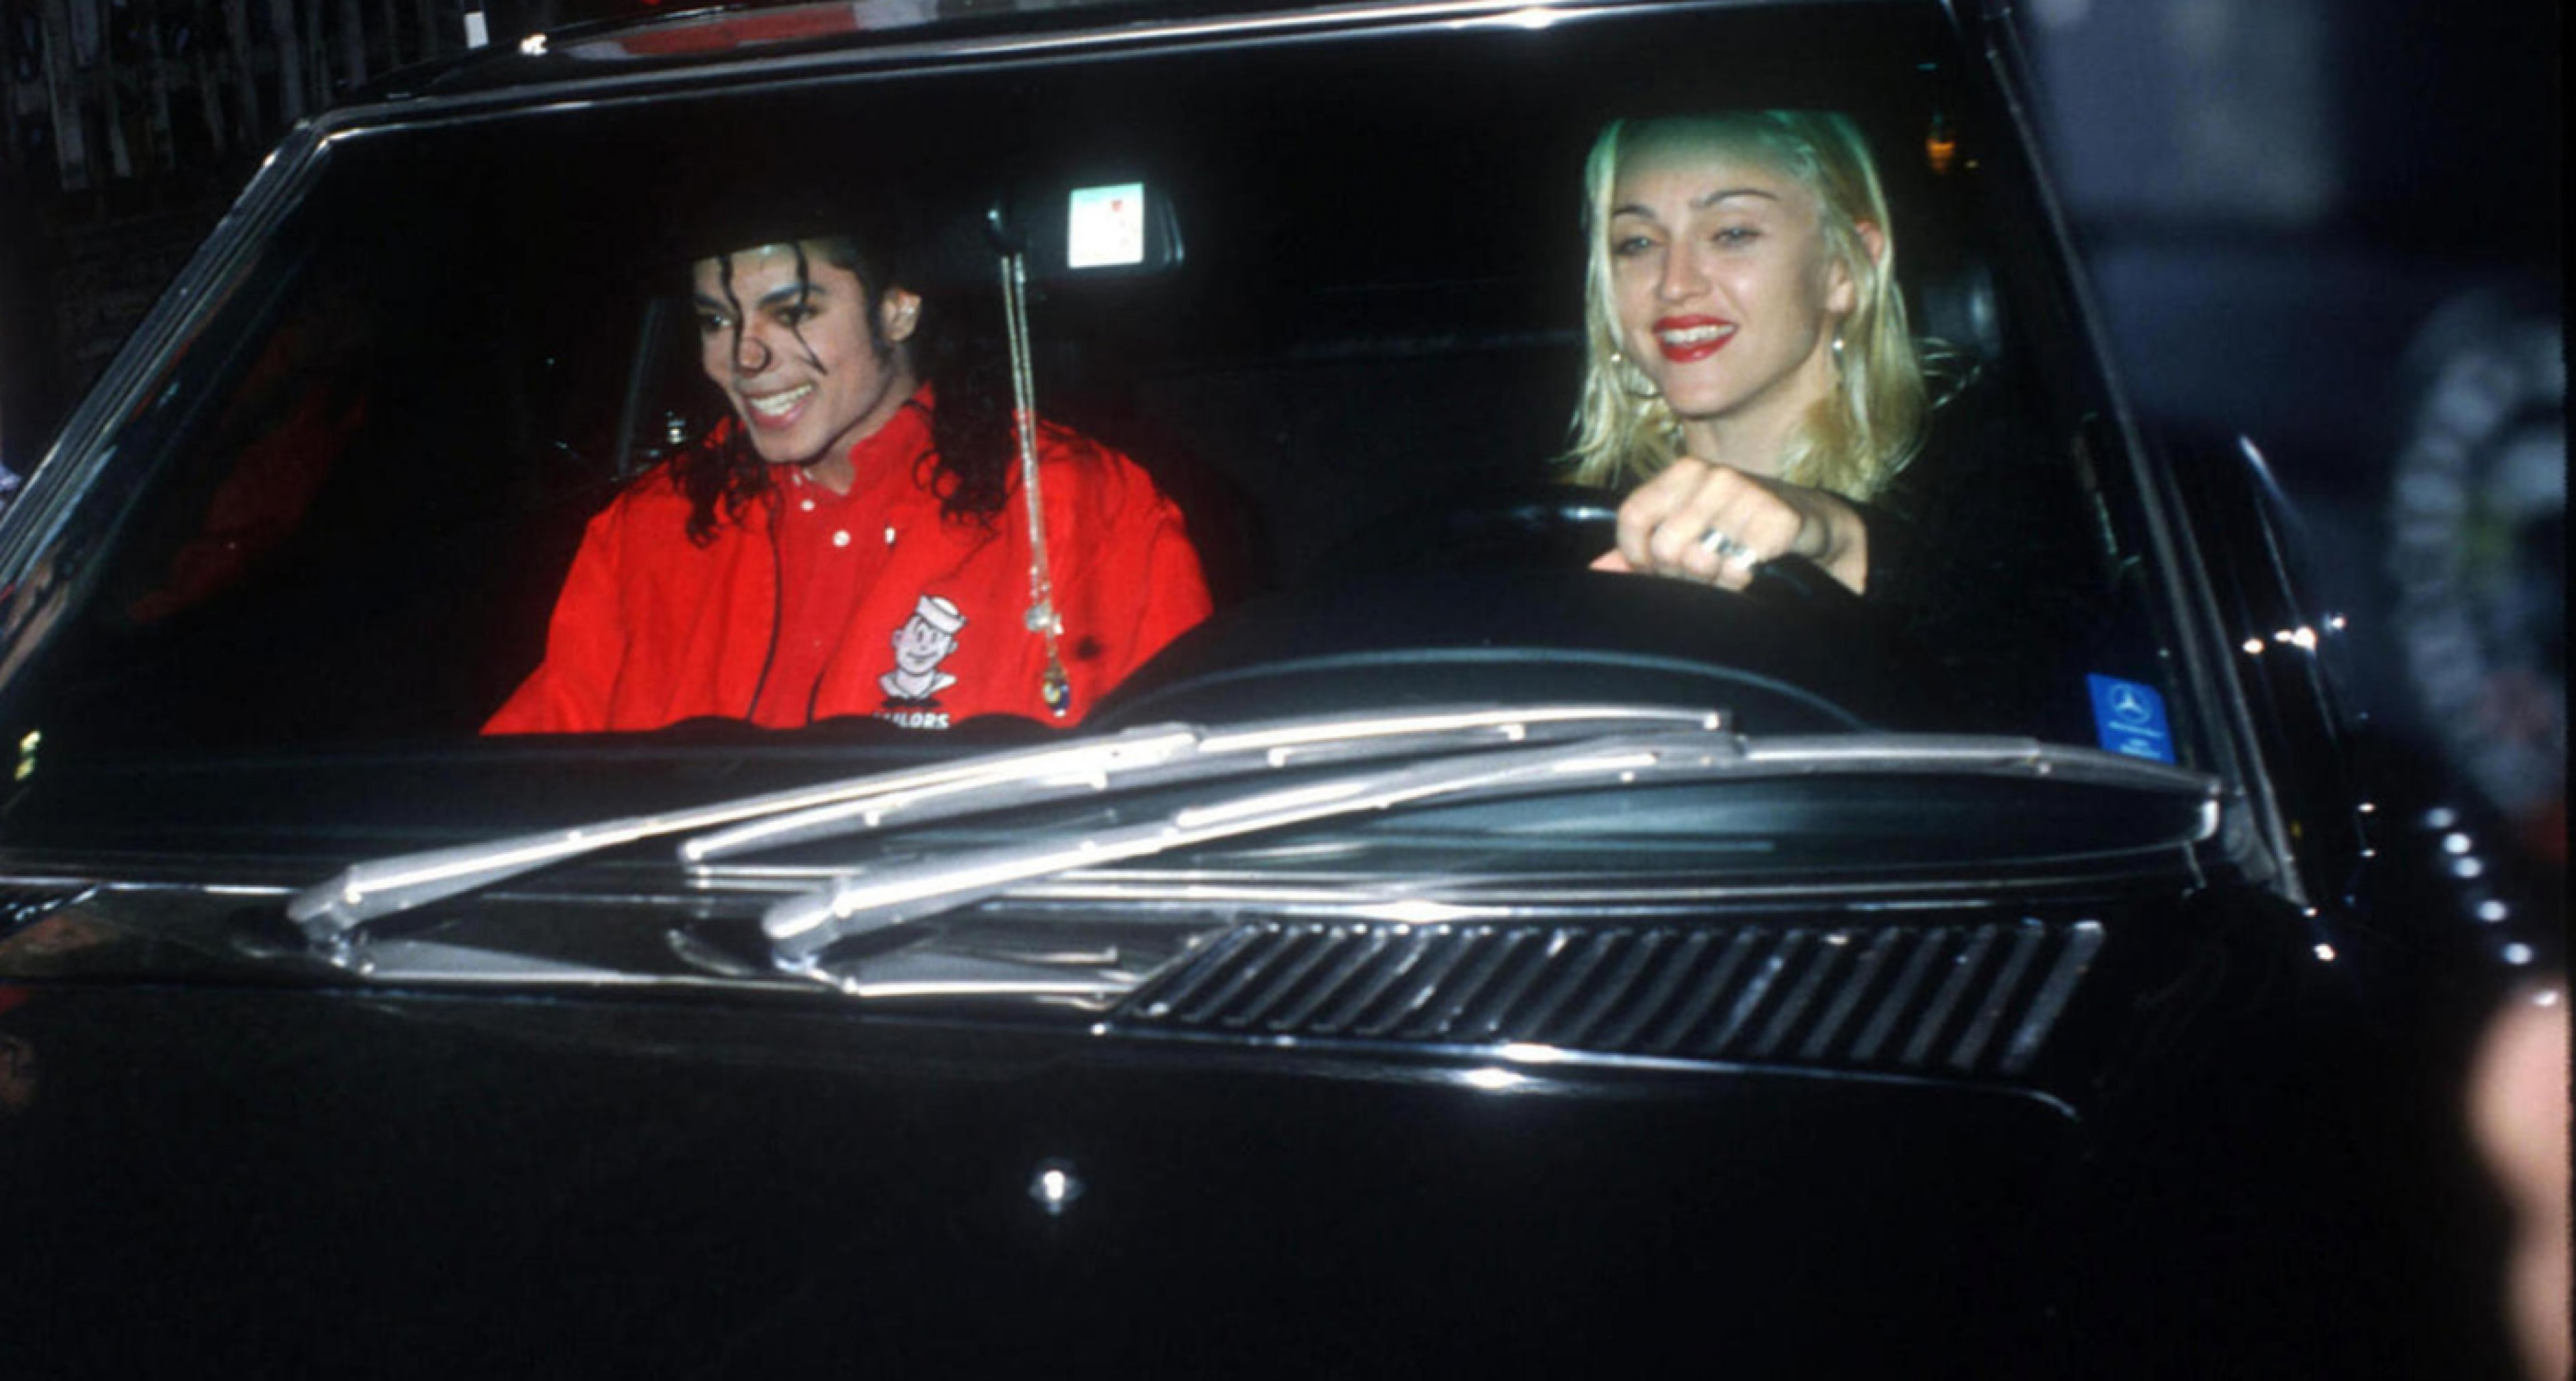 1987 Mercedes-Benz 560SL with Hardtop given to Madonna by Sean Penn